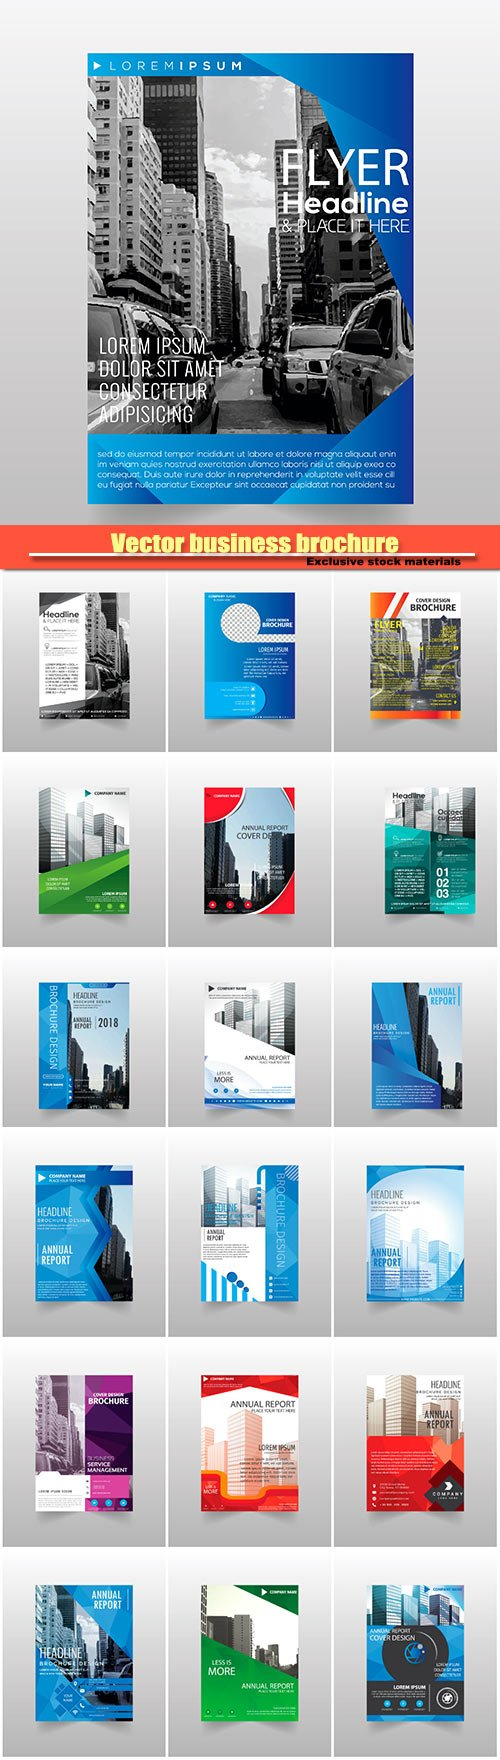 Vector business brochure flyers